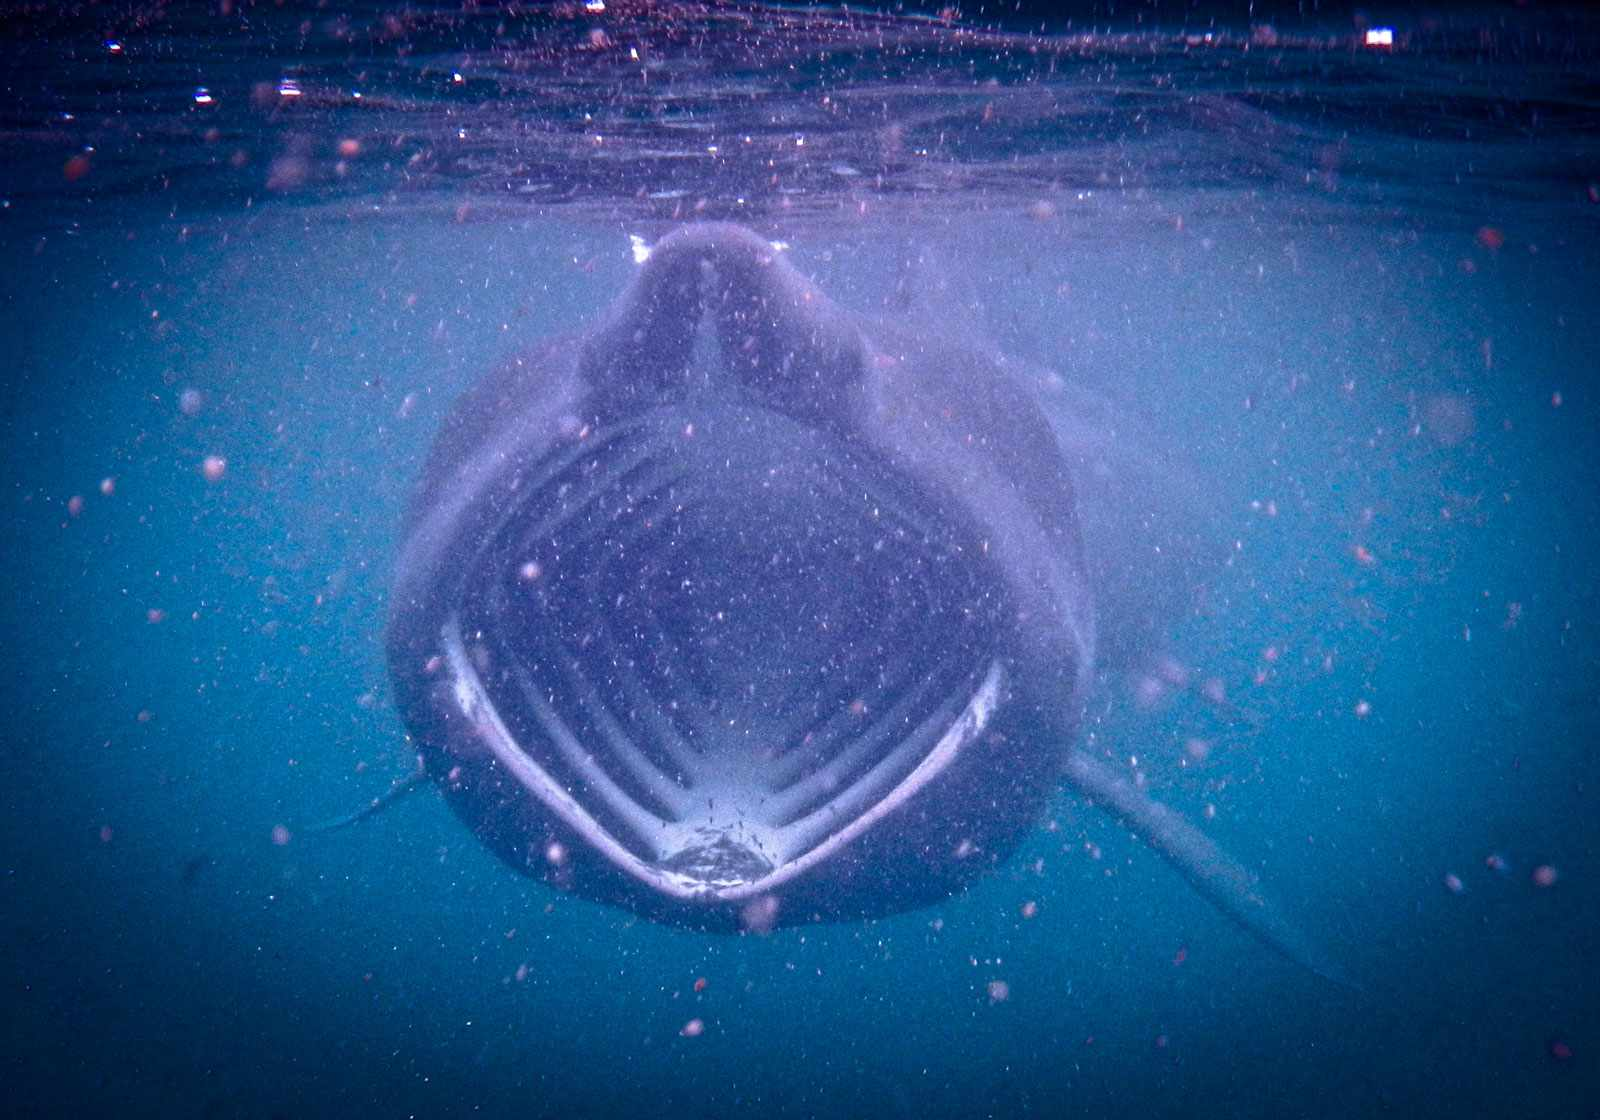 Basking-shark-6ff36c6